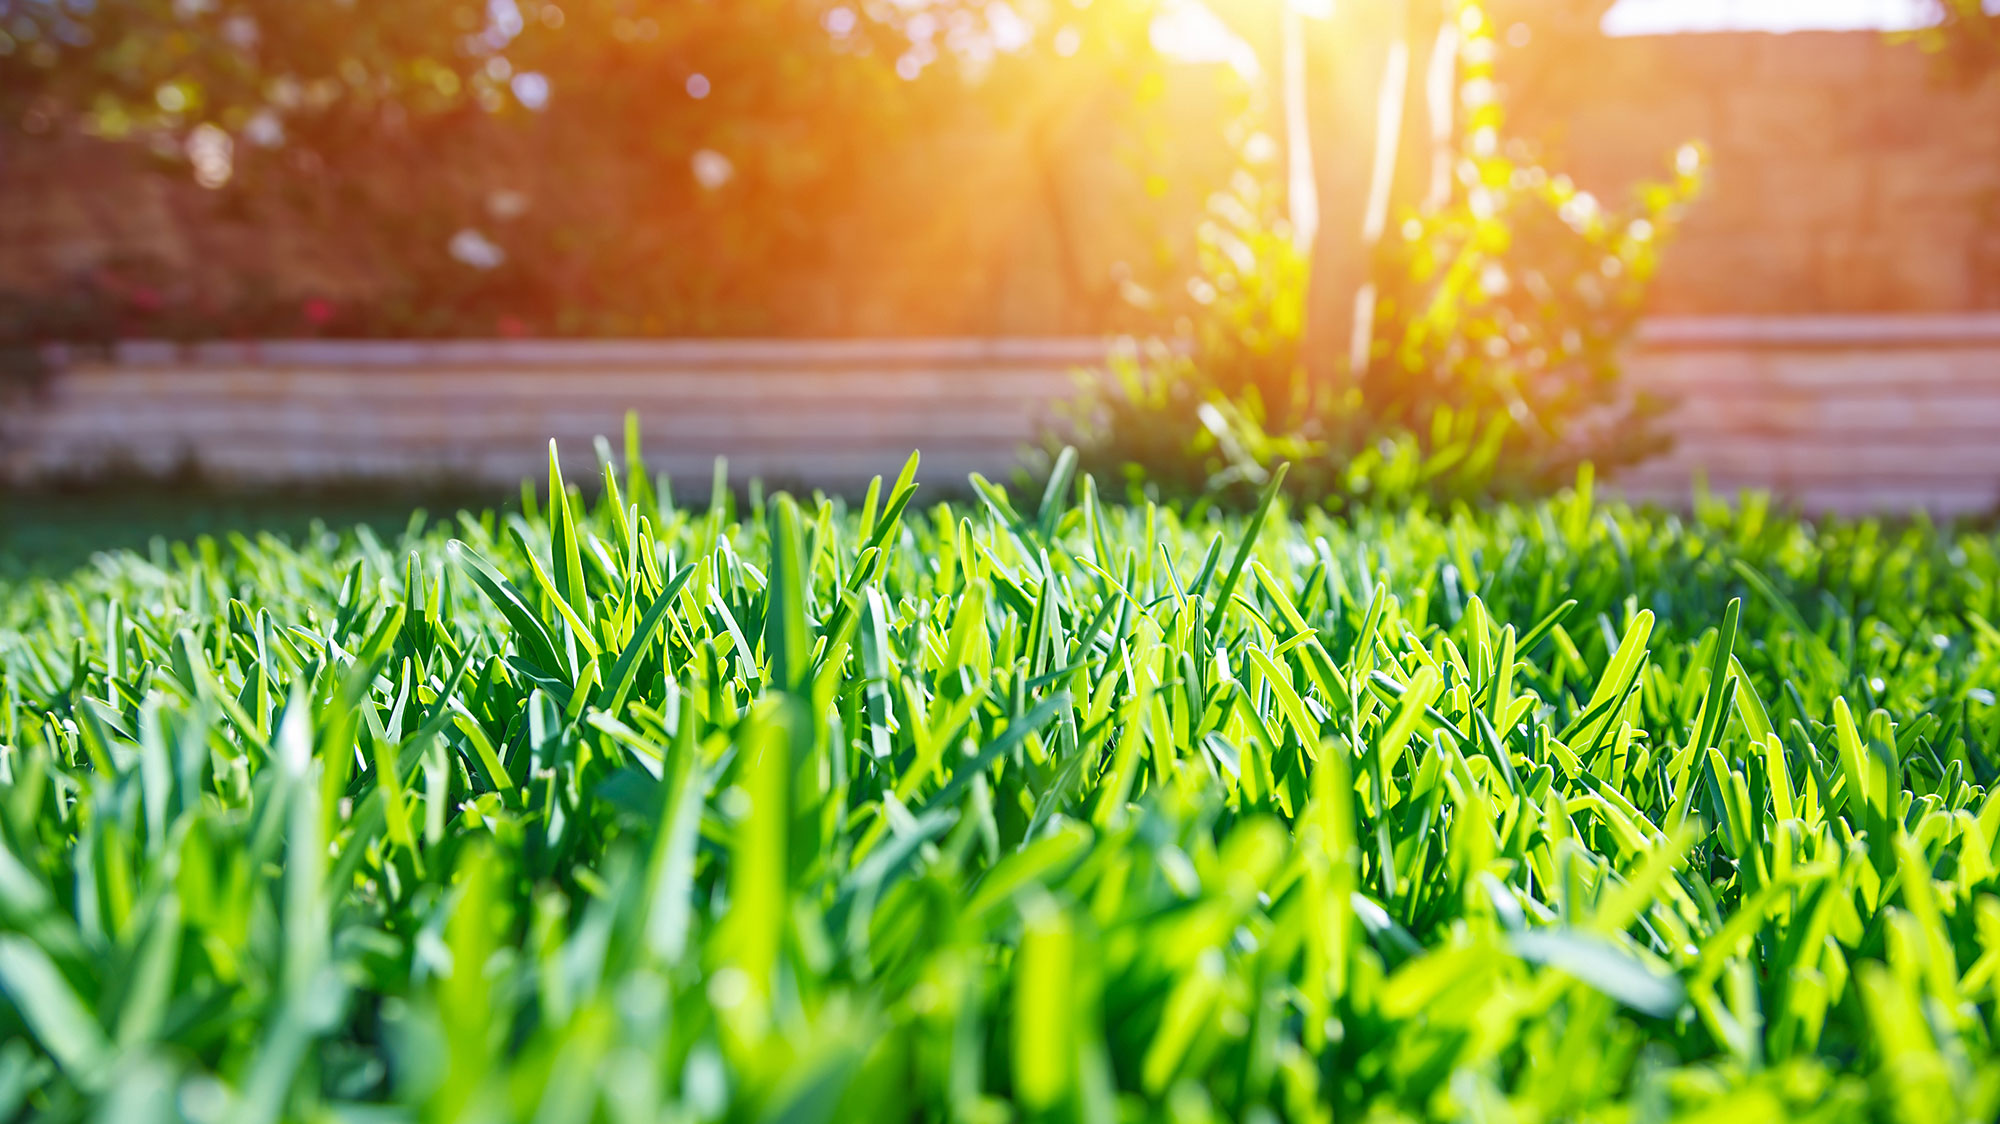 Leave your lawn care to the professionals at JR Flores Landscape Services.